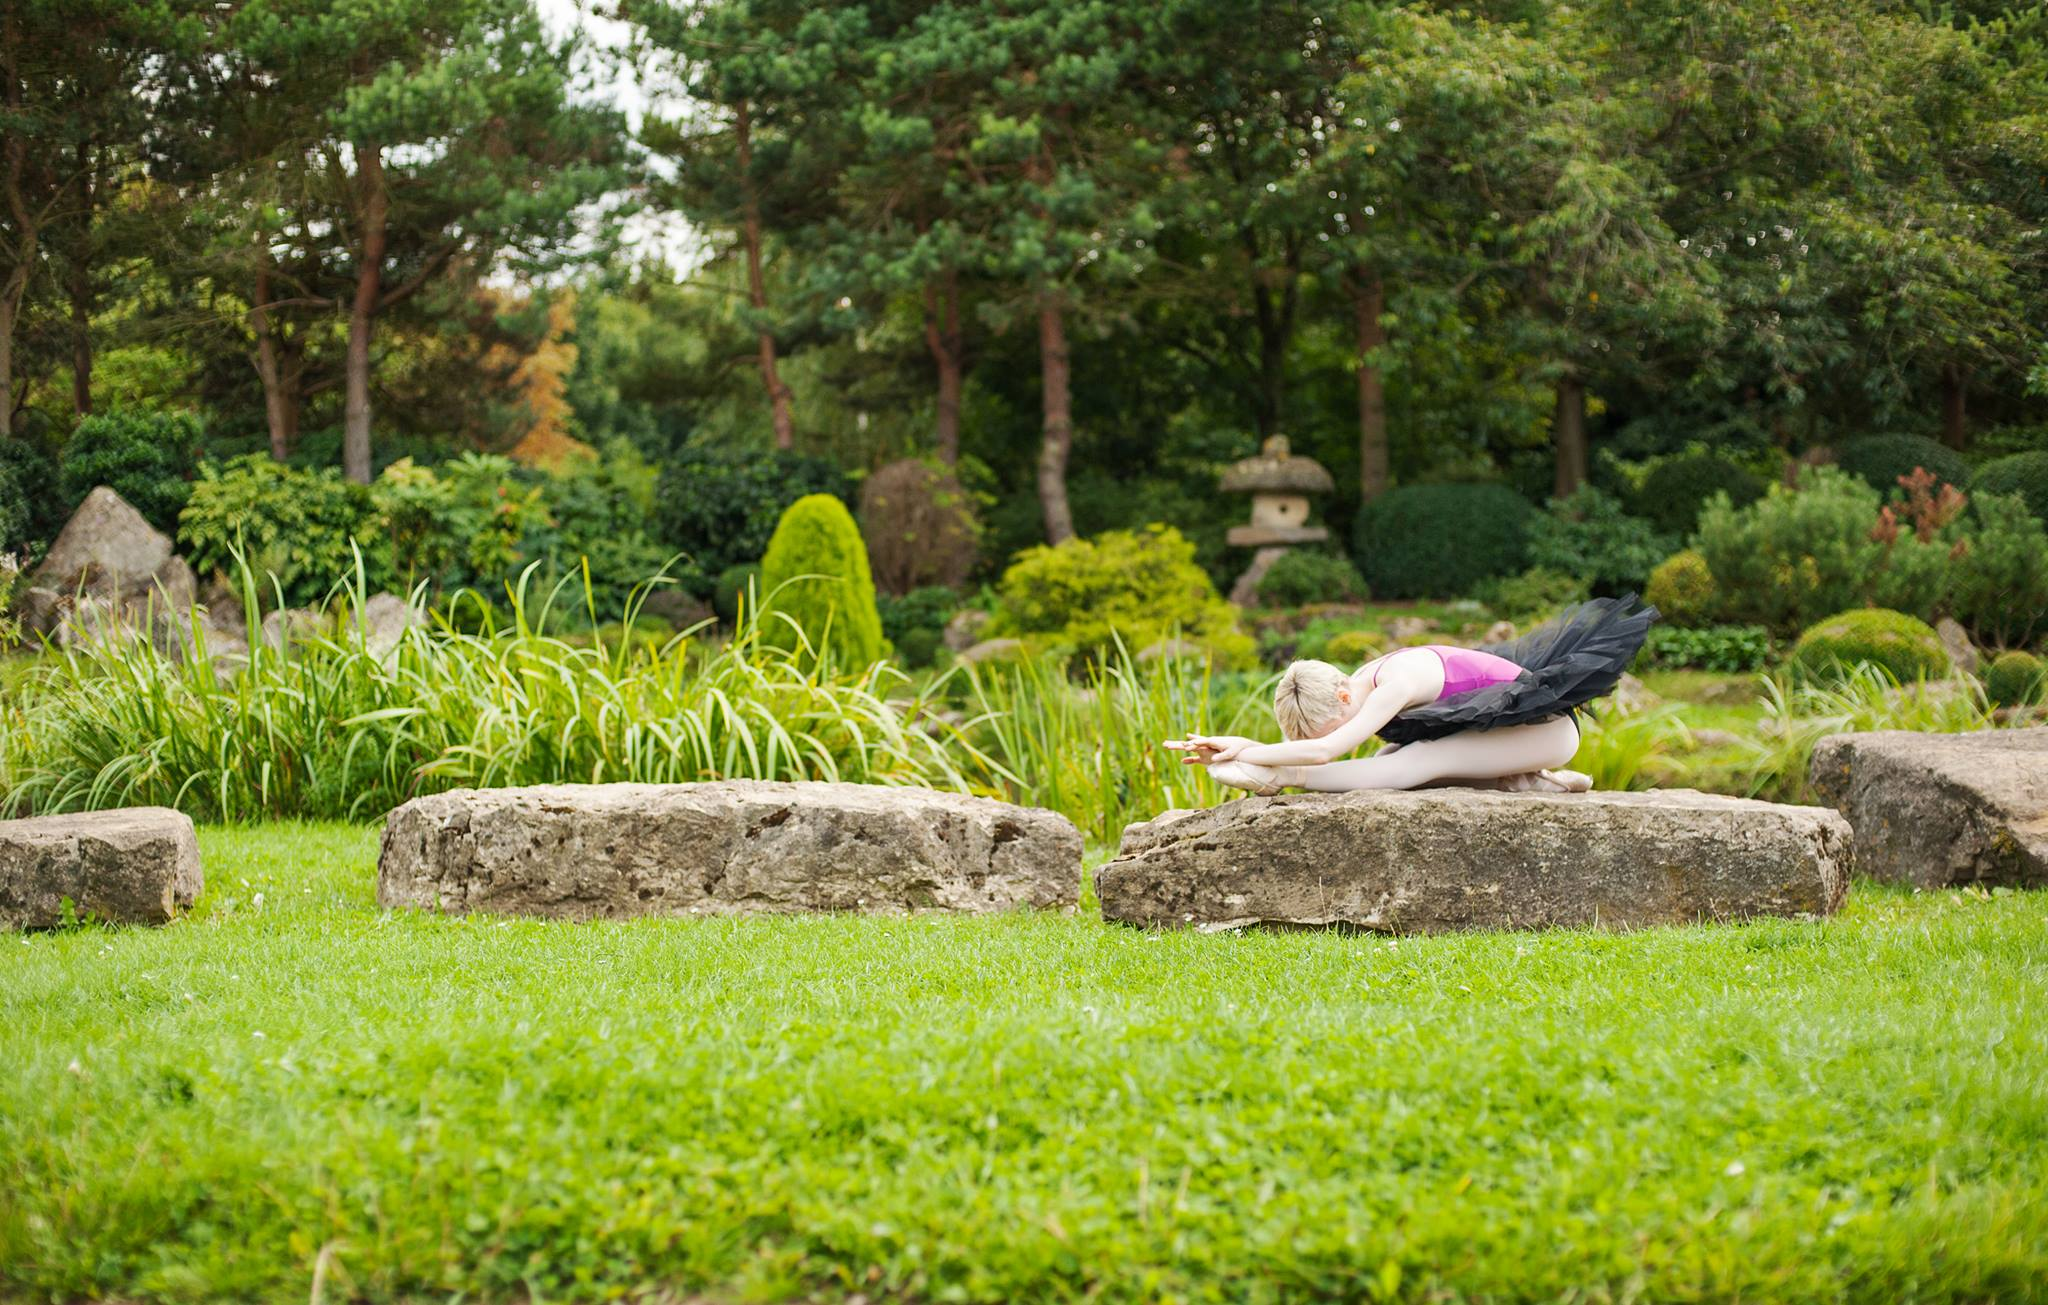 Georgina Butler, wearing a pink leotard and black tutu, resting in an elegant ballet pose on a large flat rock in an idyllic garden. Photo by Terry Grehan.